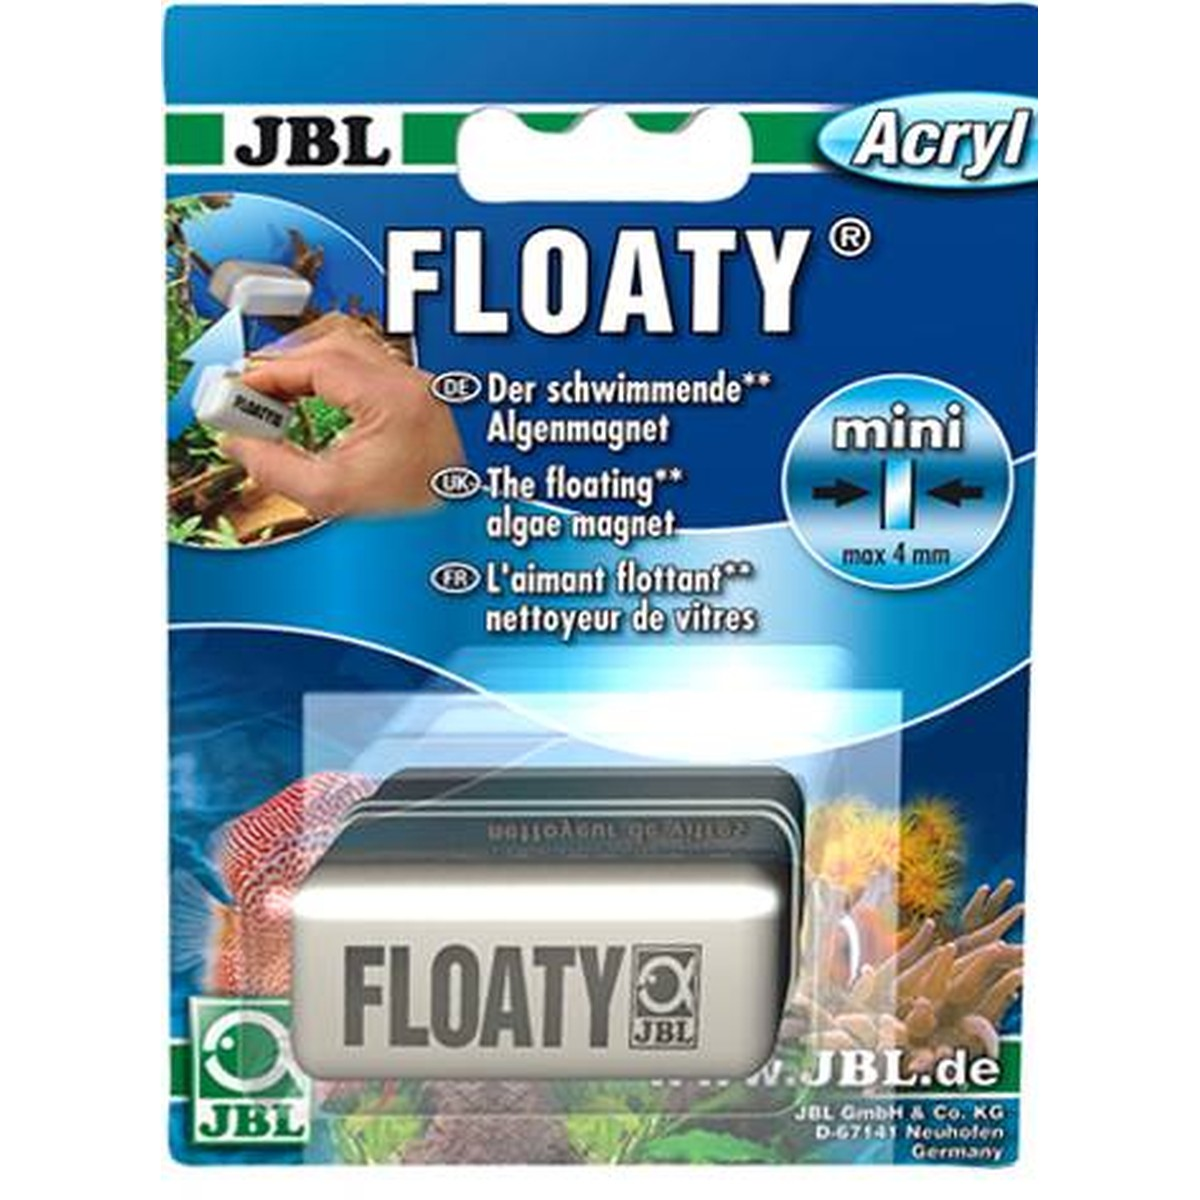 JBL Floaty  Mini Acryl  max. 4mm D/GB/F